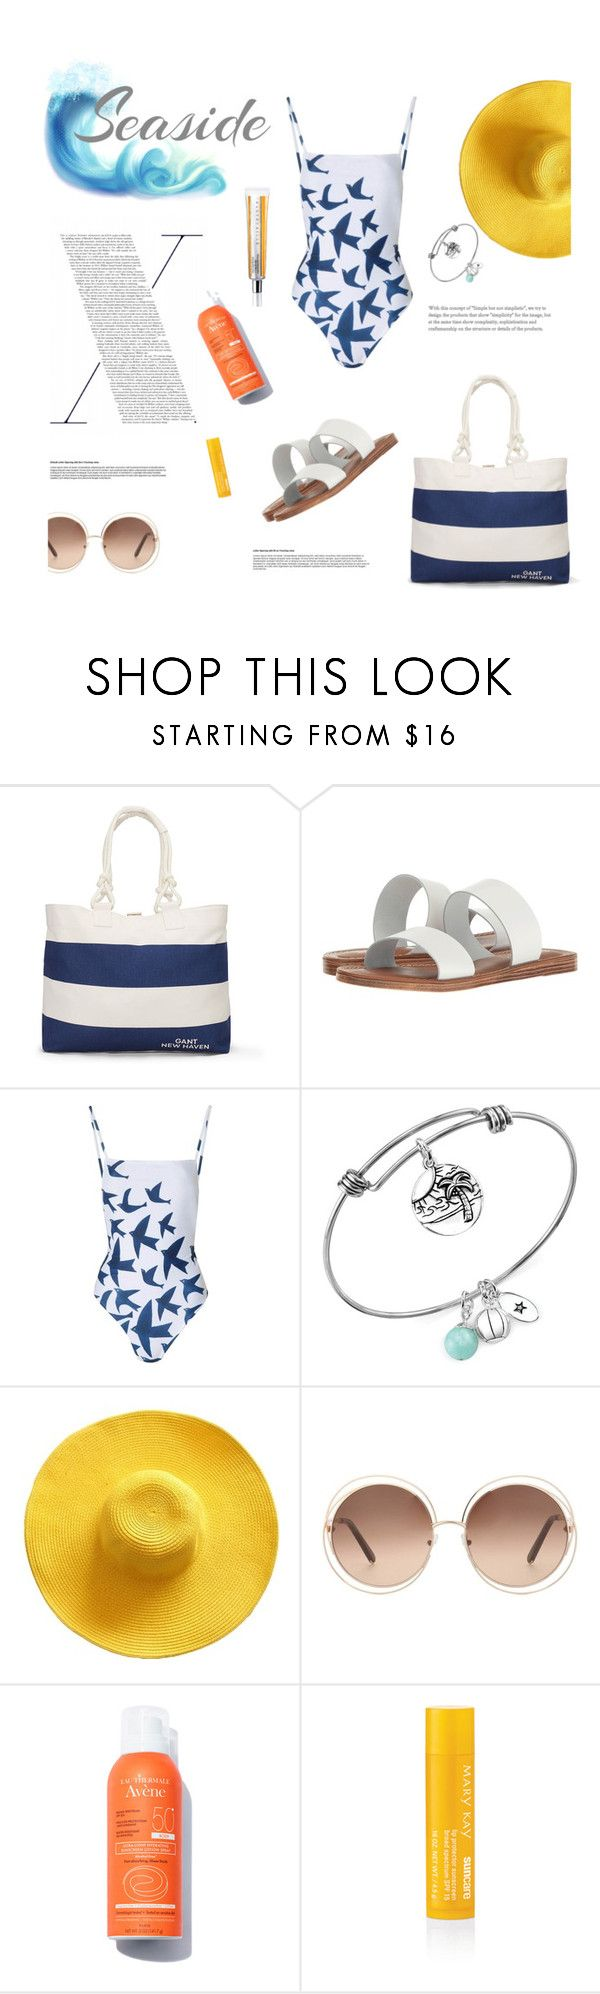 """beach day"" by gabrielleleroy ❤ liked on Polyvore featuring GANT, Bella-Vita, Mara Hoffman, Unwritten, Chloé, Mary Kay and Chantecaille"